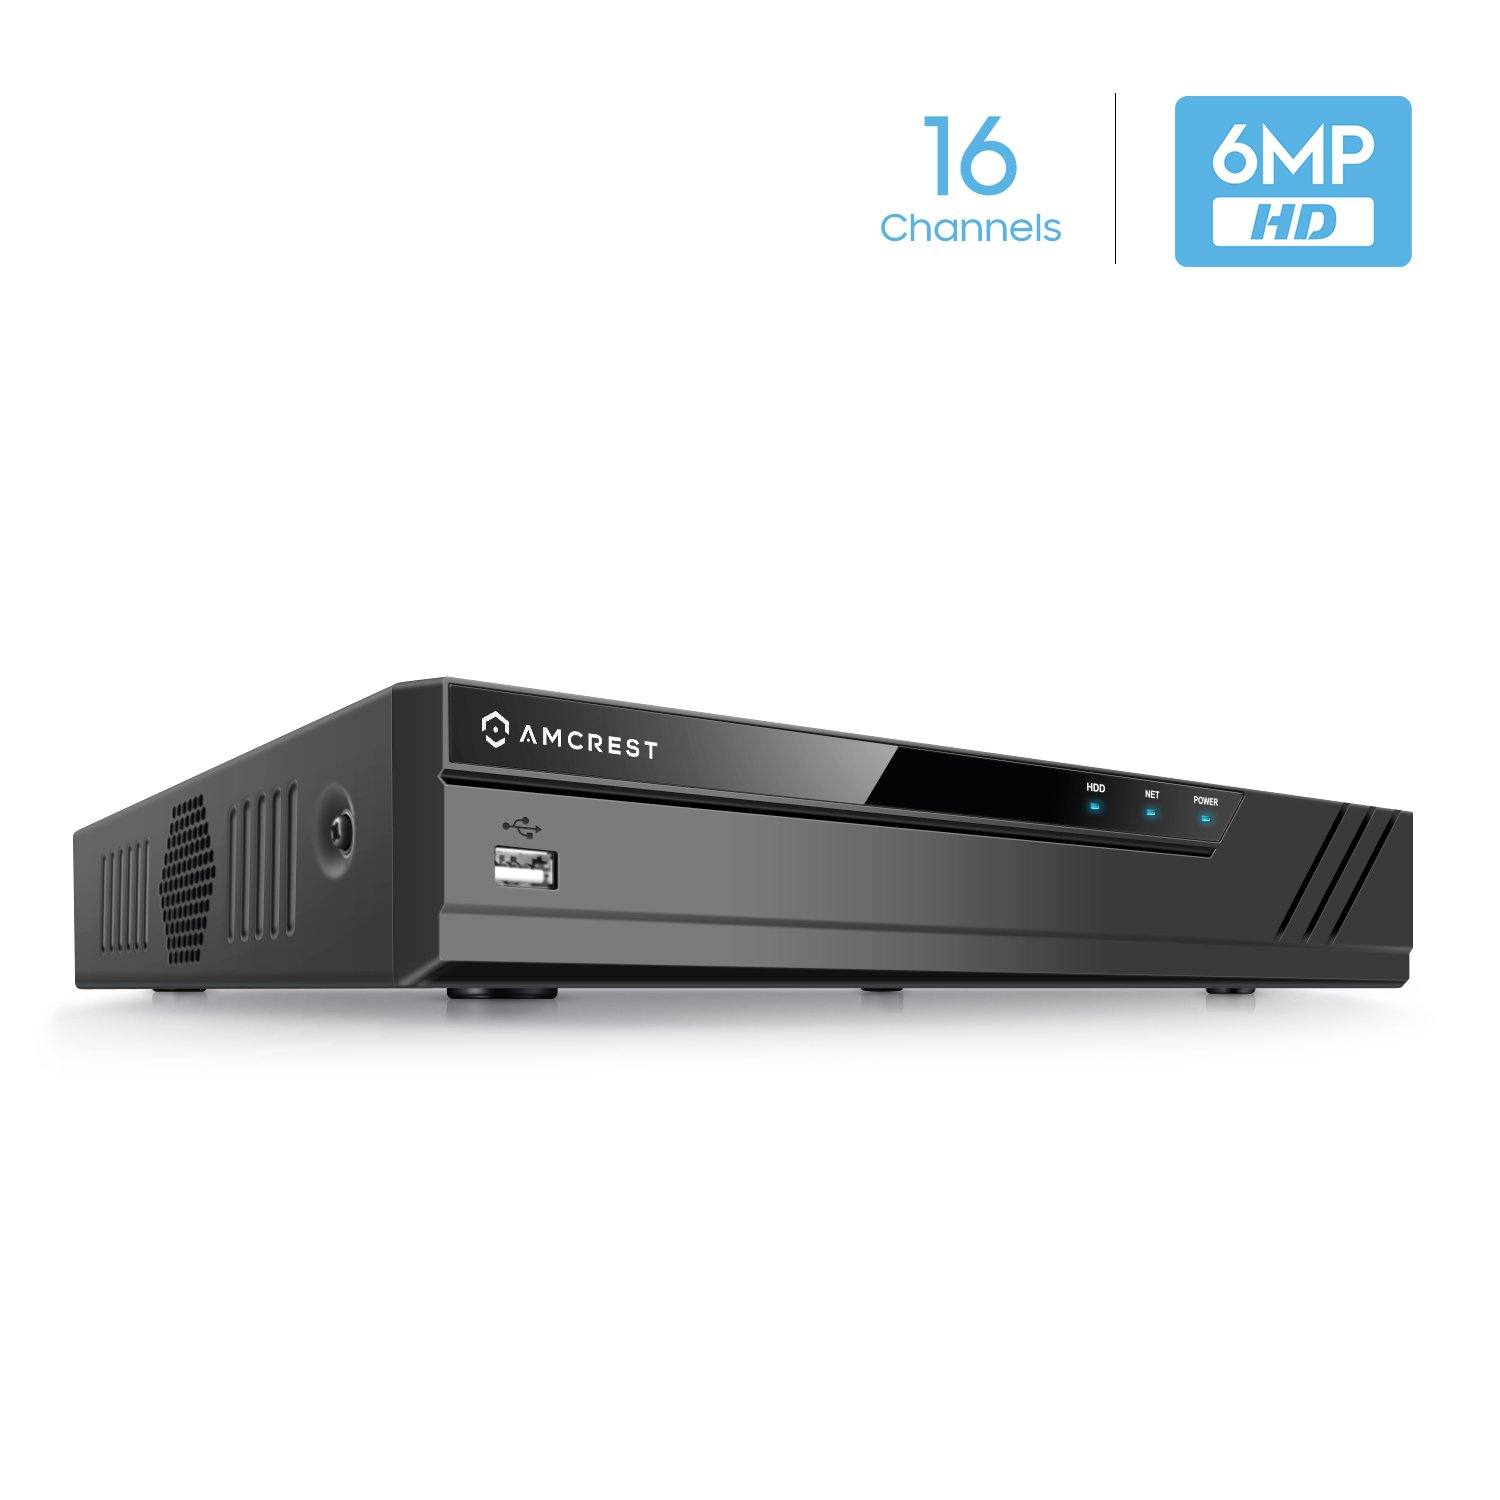 Amcrest NV2116 16CH NVR (1080P/3MP/4MP/5MP/6MP) Network Video Recorder - 16-Channel, Supports up to 6TB HDD (Not Included) (No Built-in WiFi)